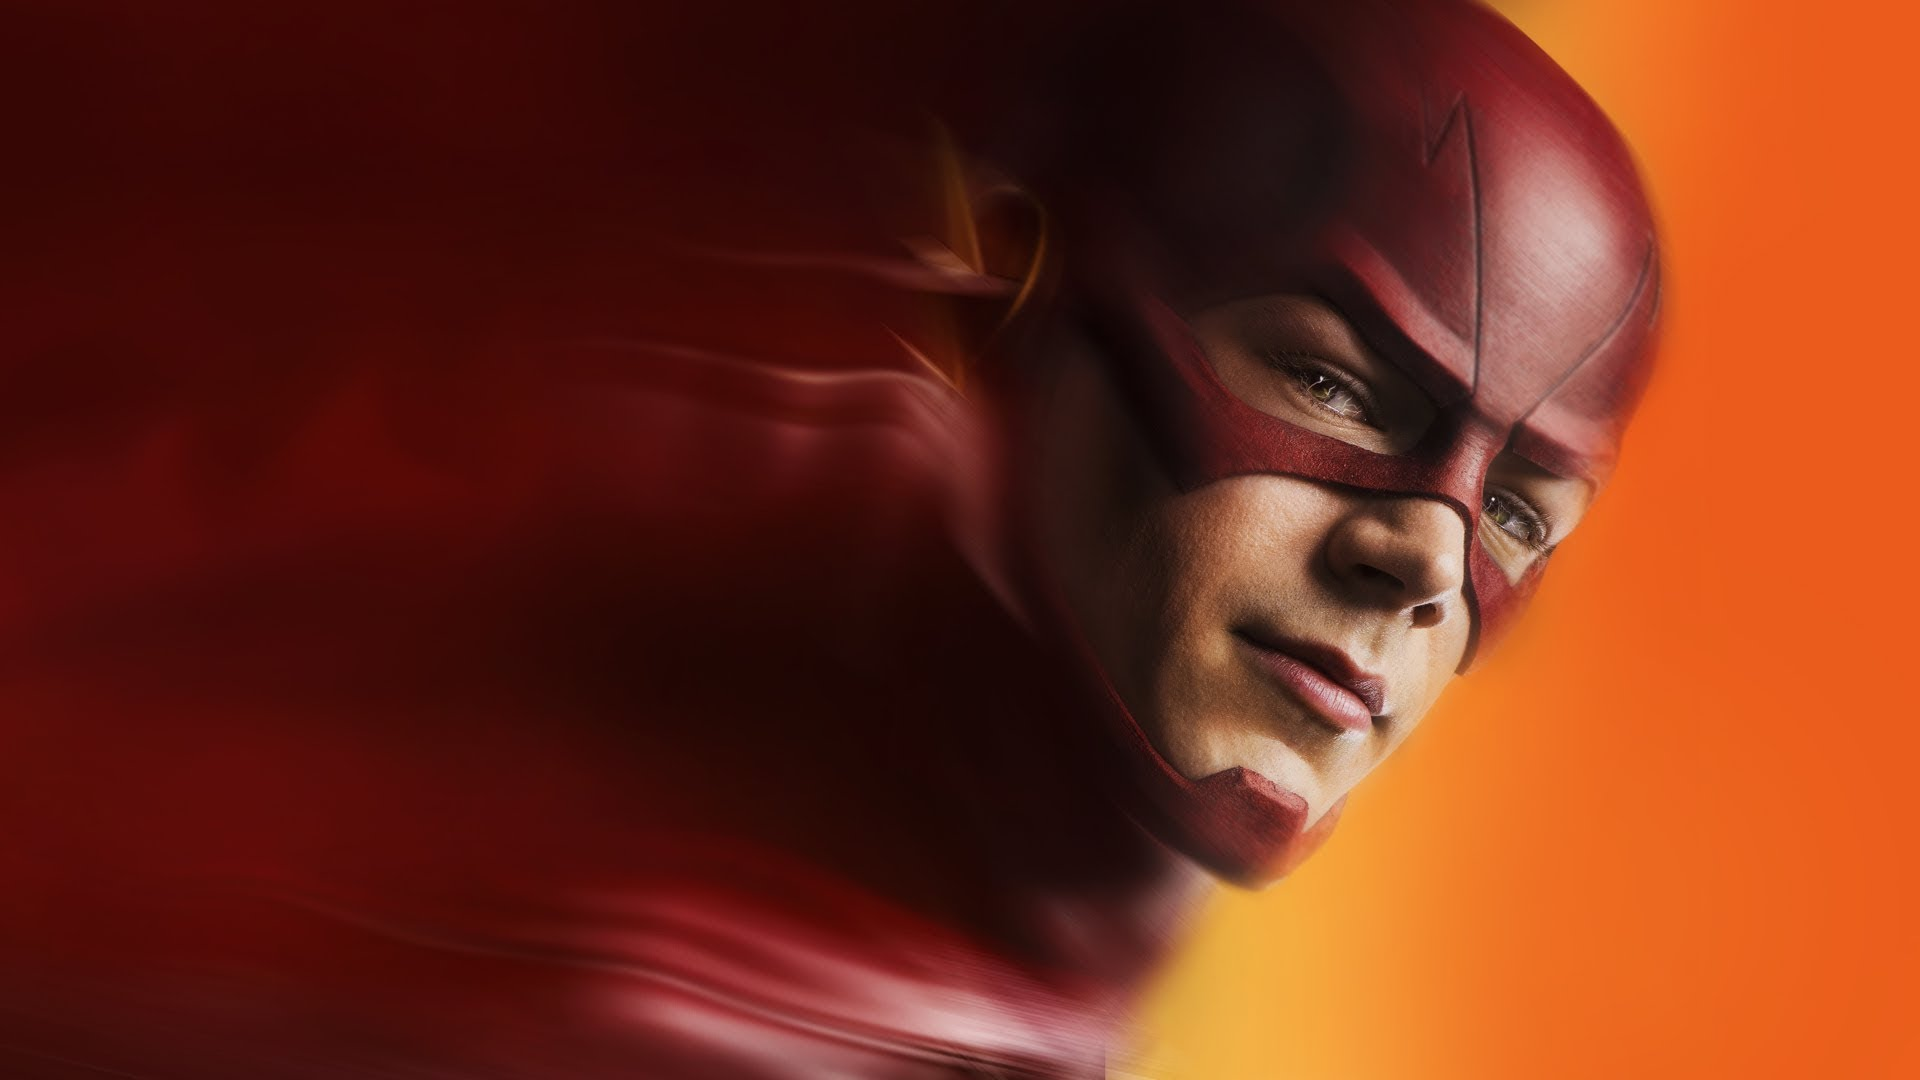 the flash s02e18